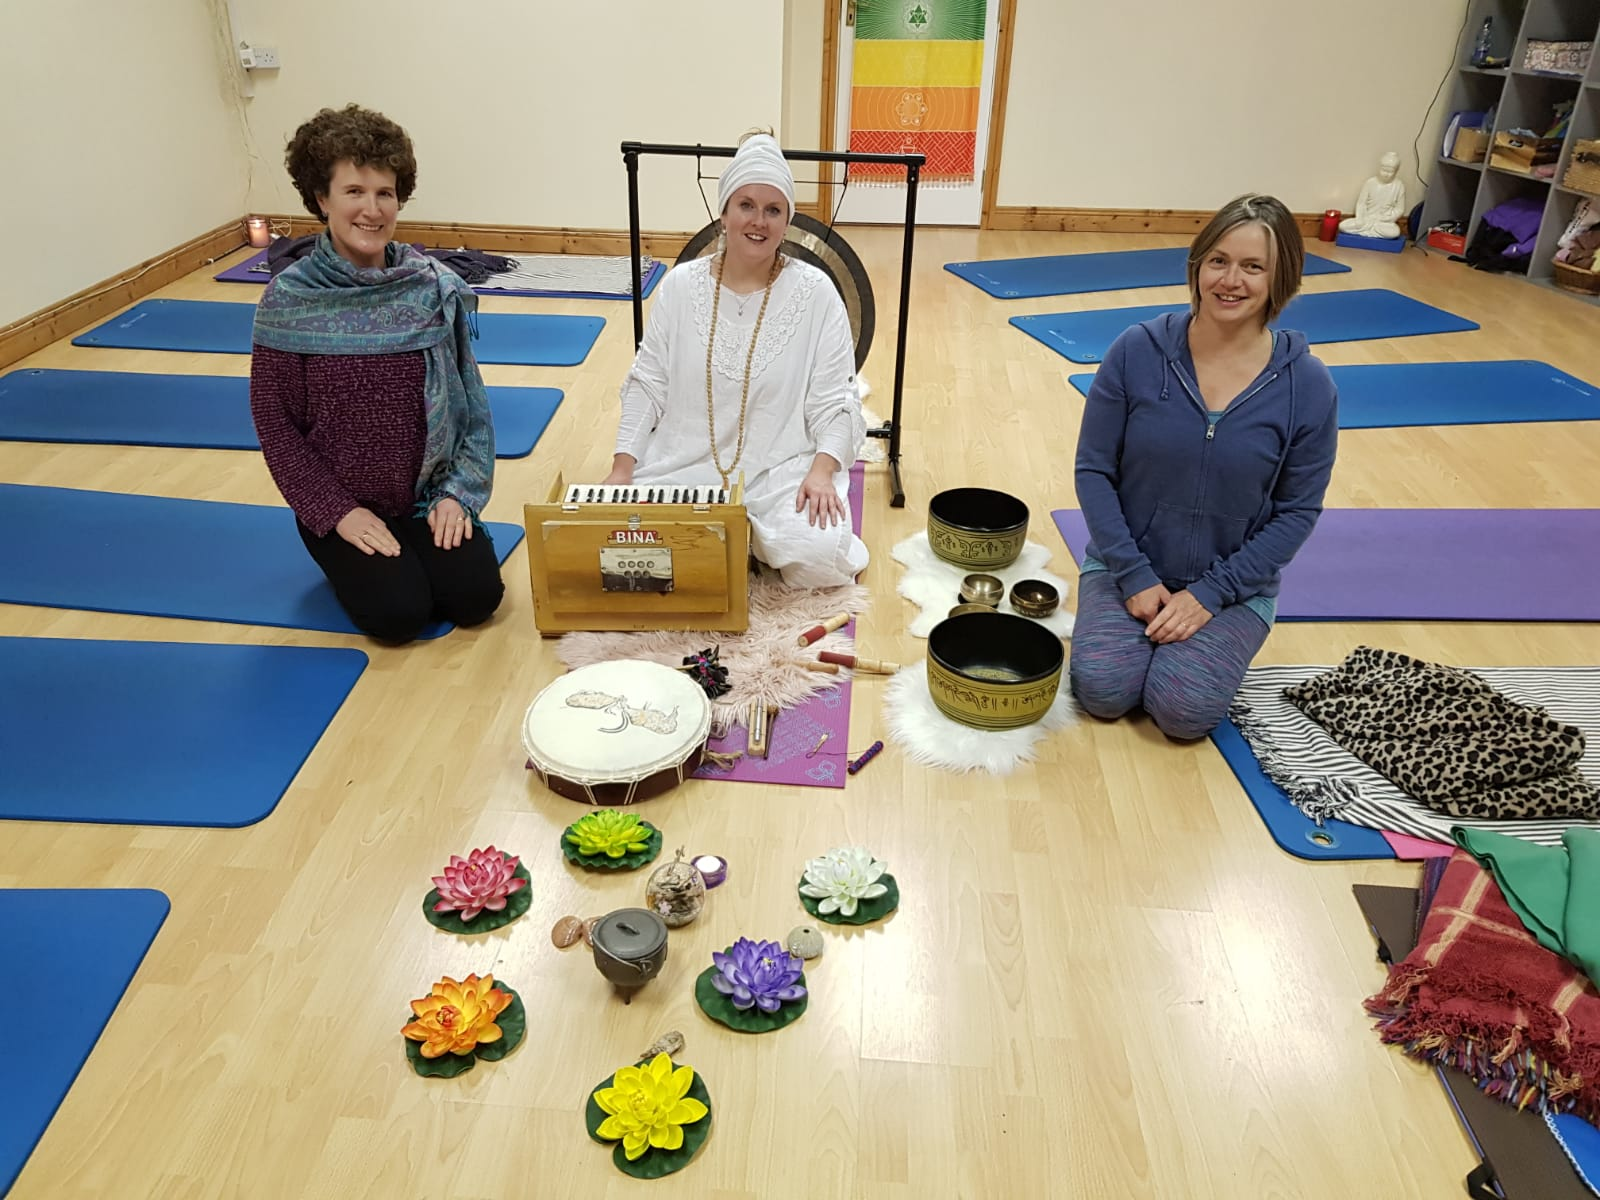 3 people seated on floor of studio with sound gong and lotus flowers